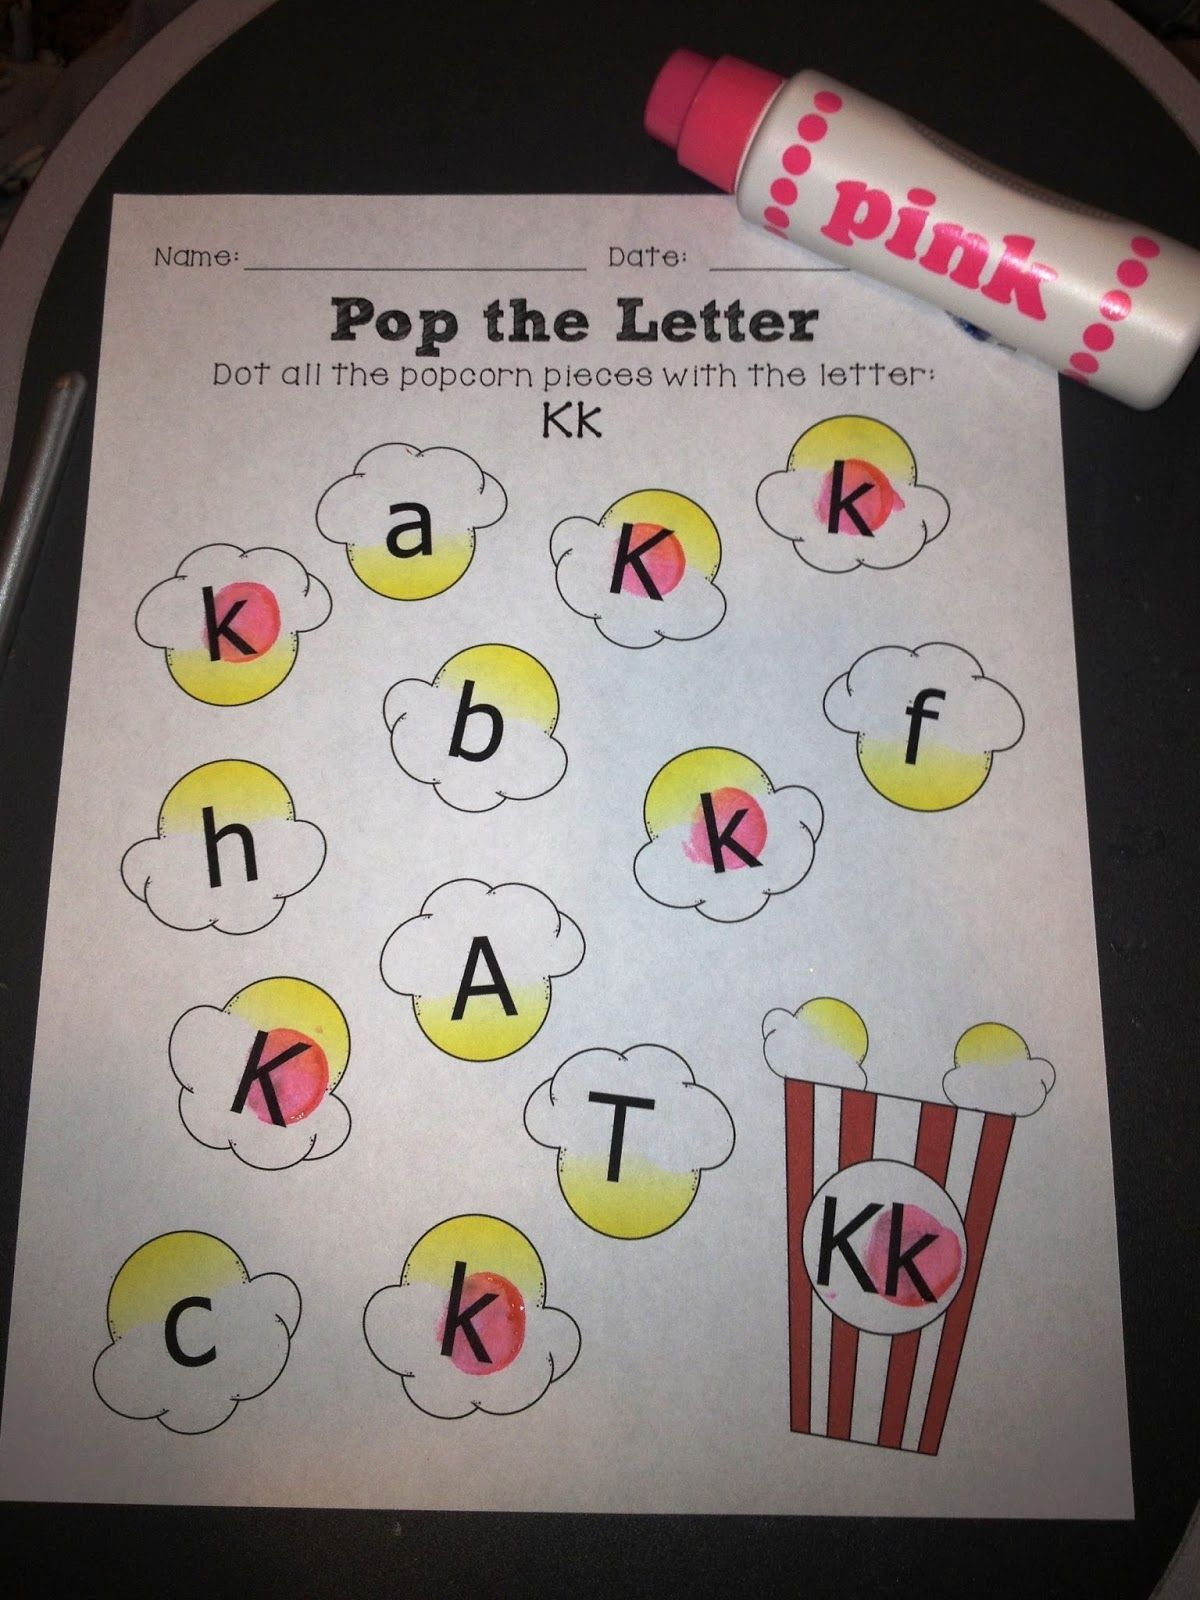 Popcorn Capital and Lowercase Letter Match perfect for National